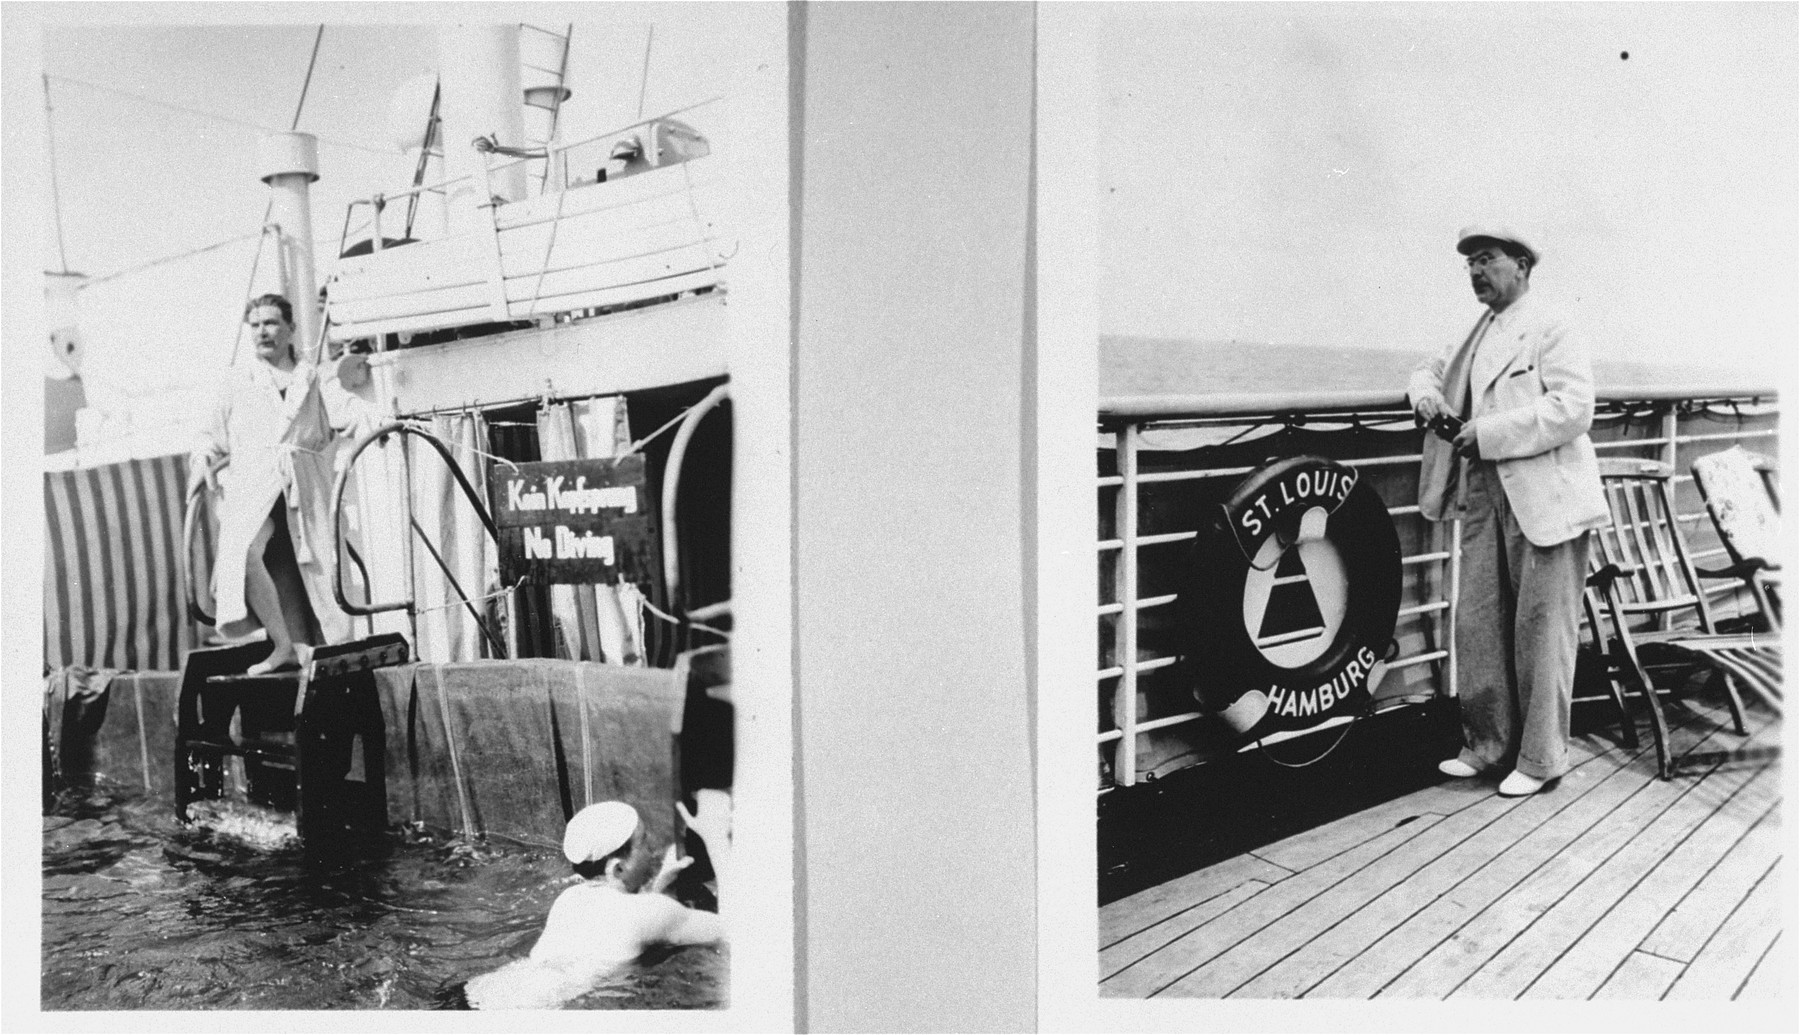 Passengers on the refugee ship MS St. Louis.    Left: passengers swim in the pool.  Right: a passenger stands on the deck.   From a photo album belonging to St. Louis passenger Moritz Schoenberger.